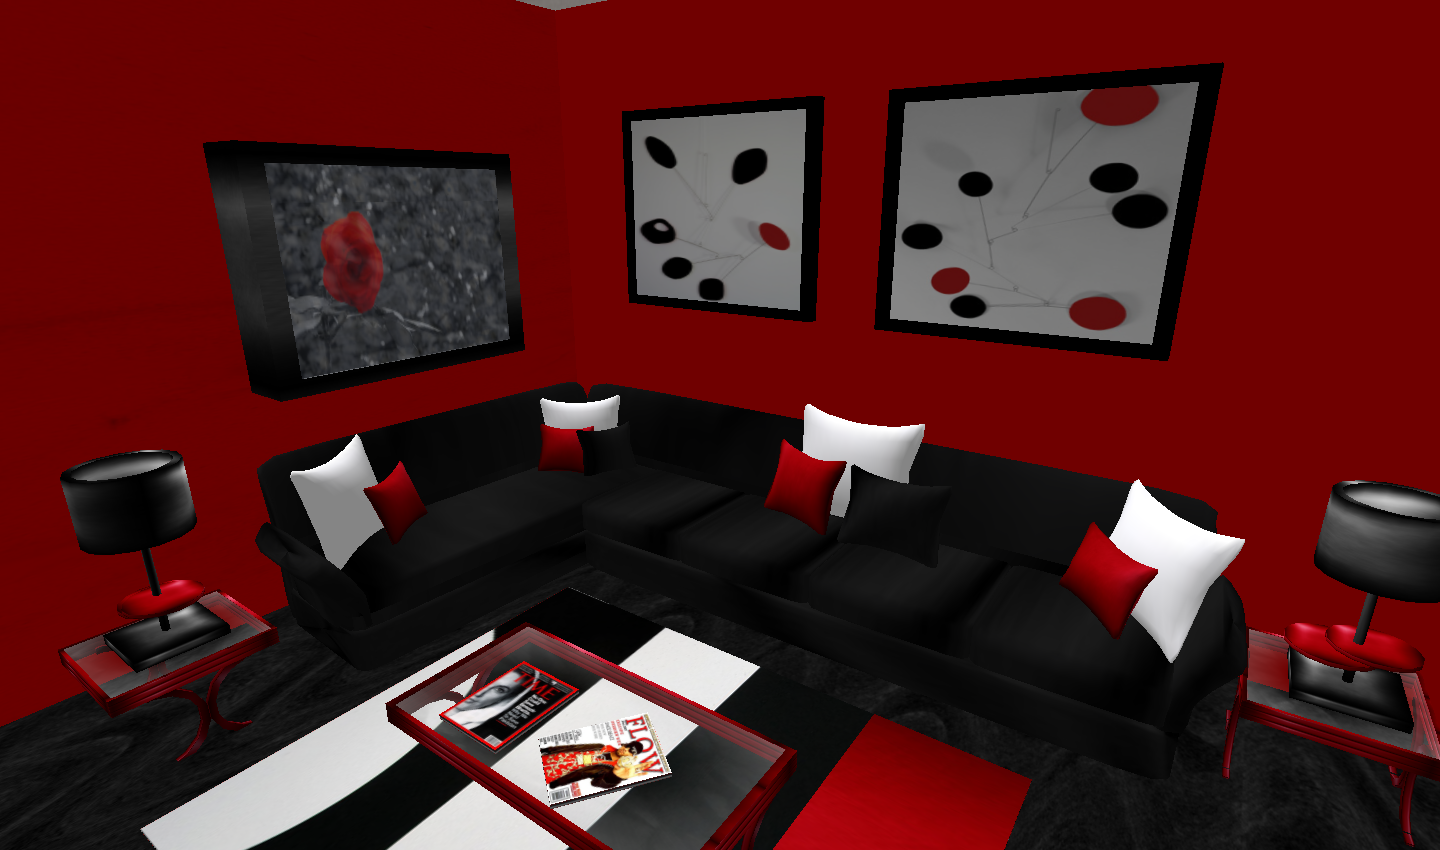 Decoration Excellent Red Black White Room Modesty Decorating Red Fascinating Red And Black Living Room Decorating Ideas Inspiration Design